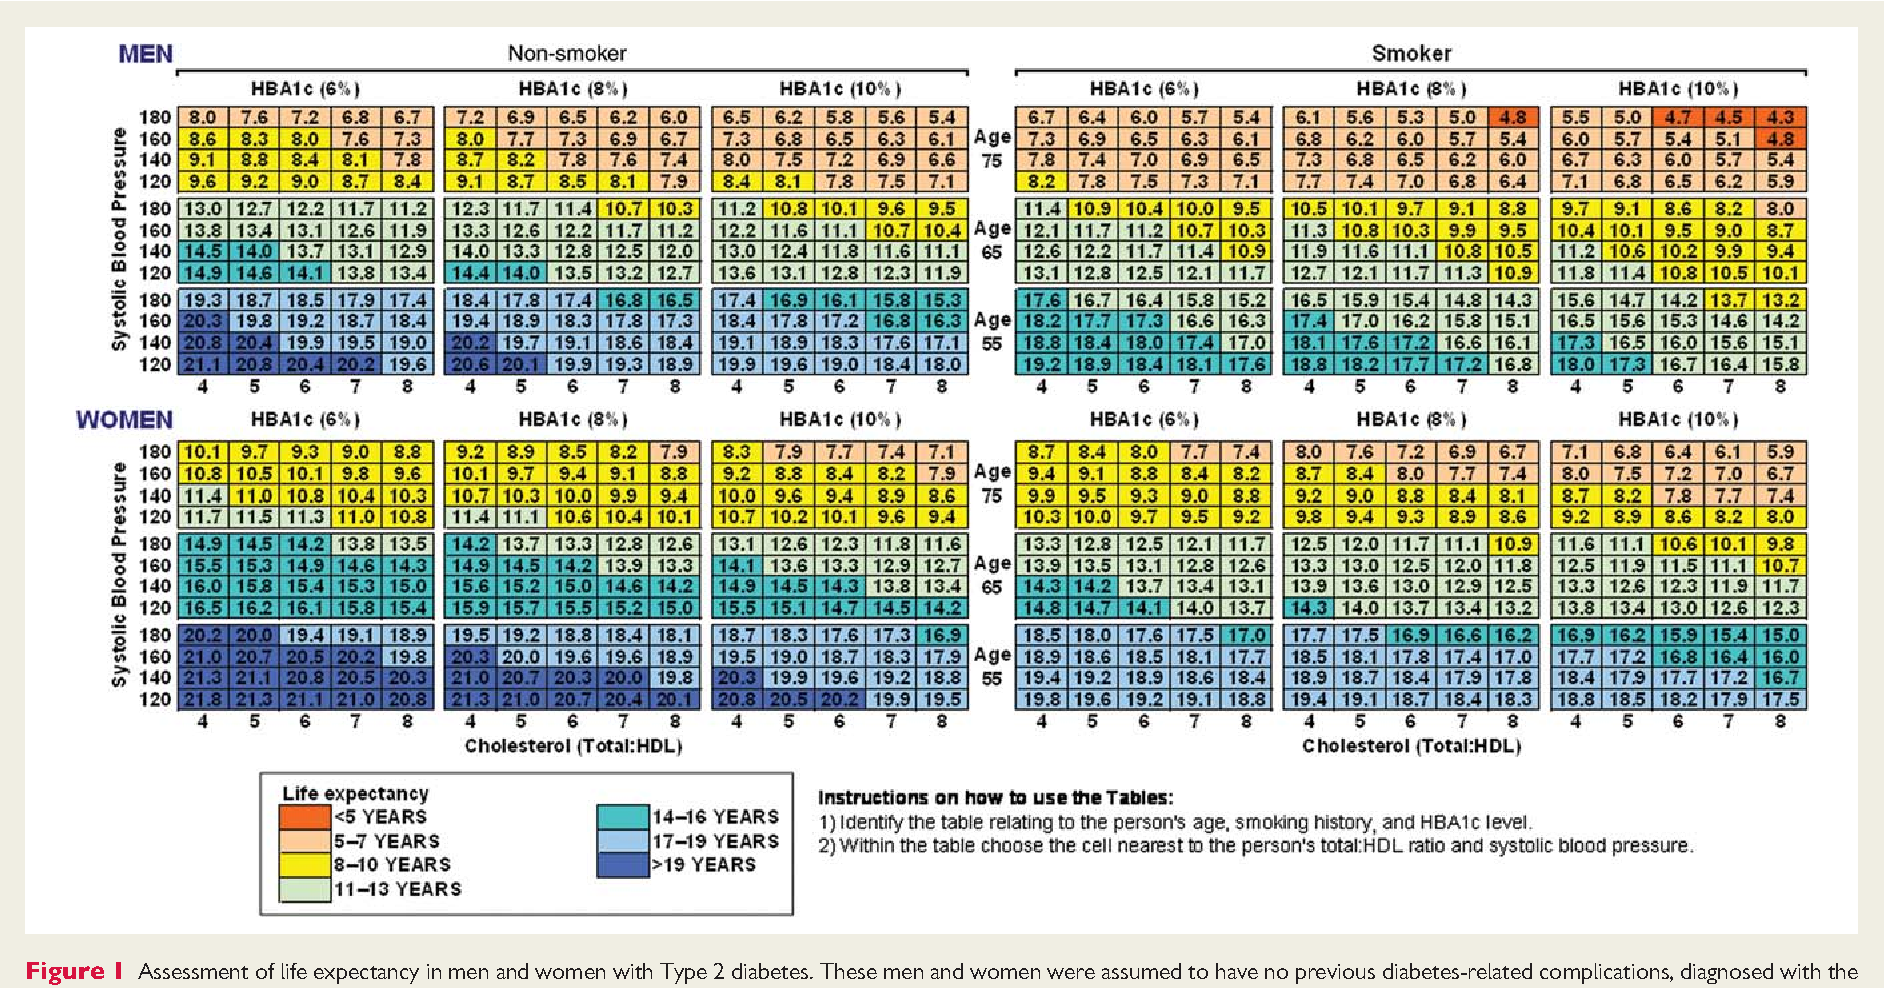 development of life expectancy tables for people with type 2